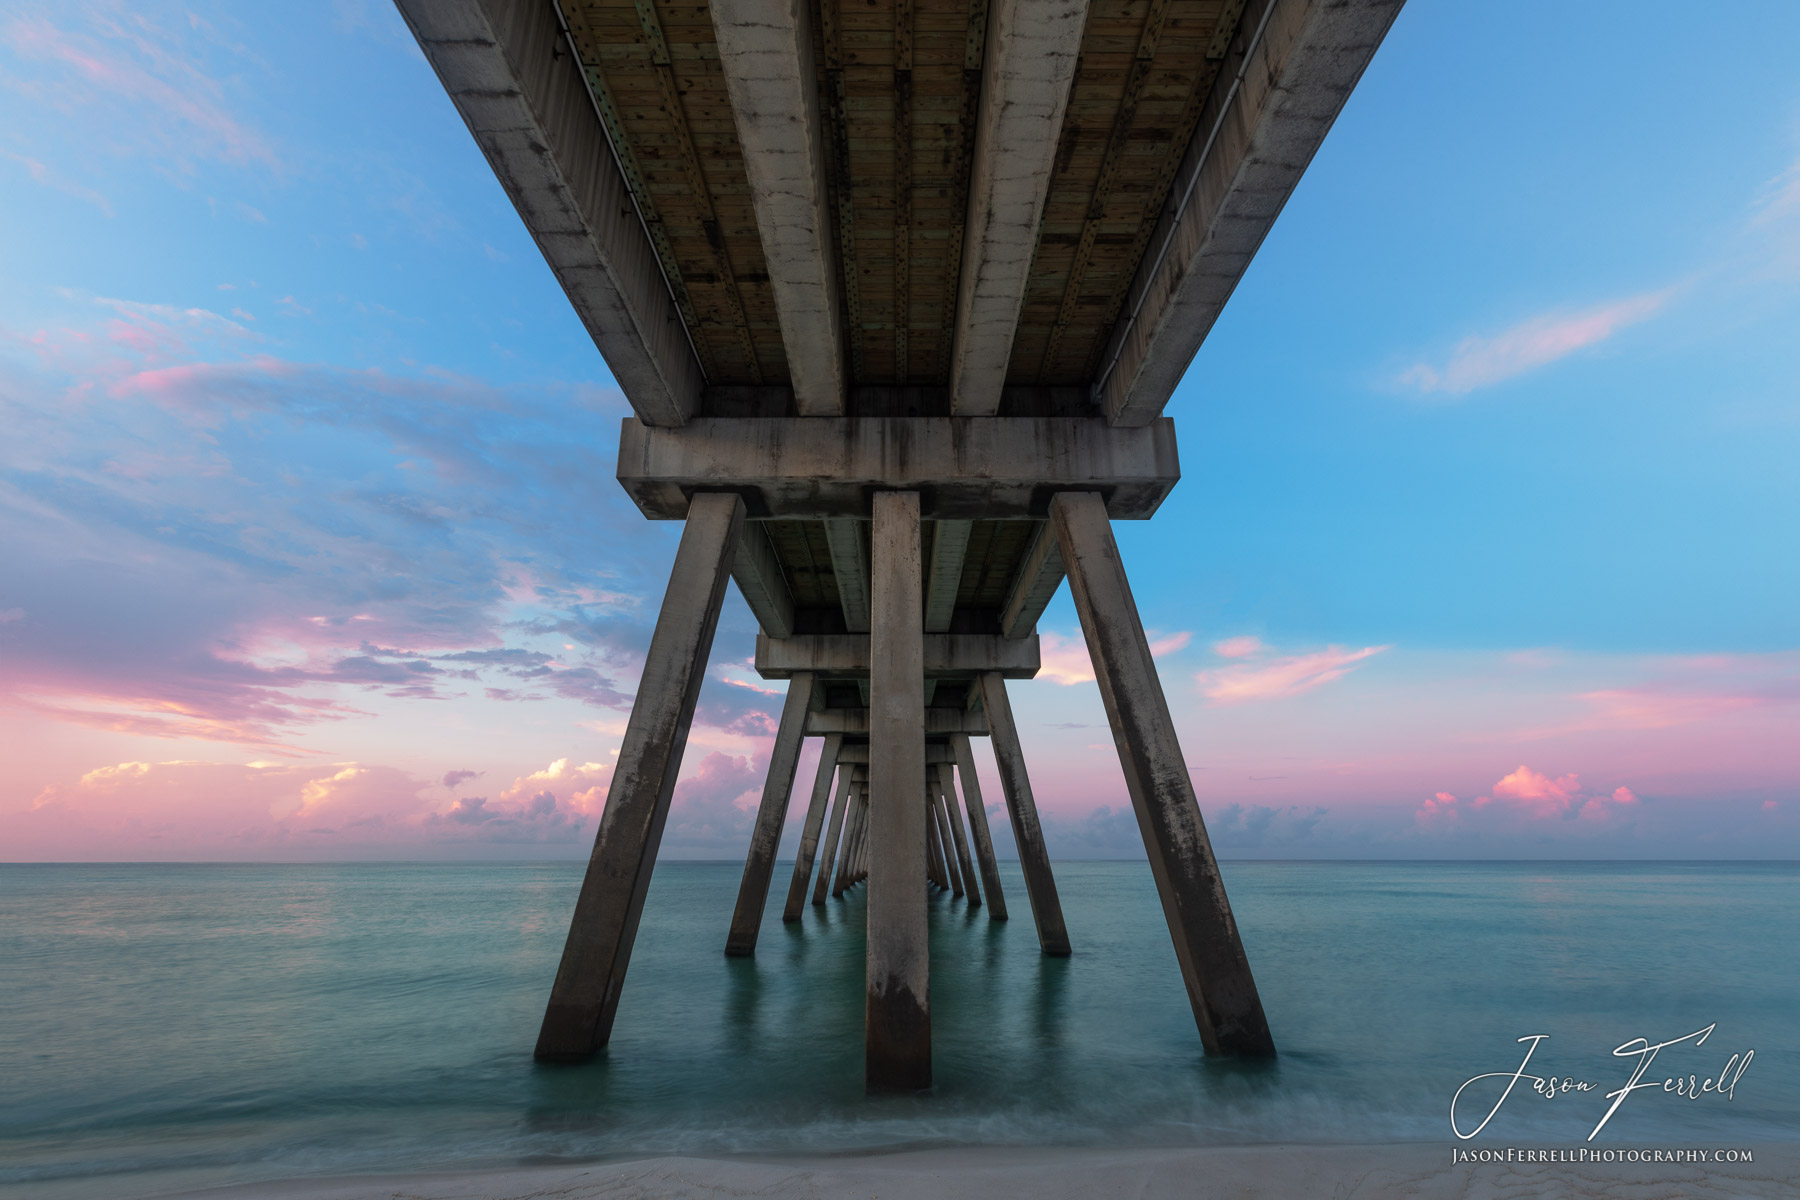 For many years, a long time friend invited me to experience the beaches of the Florida panhandle.  In the summer of 2020, I set...